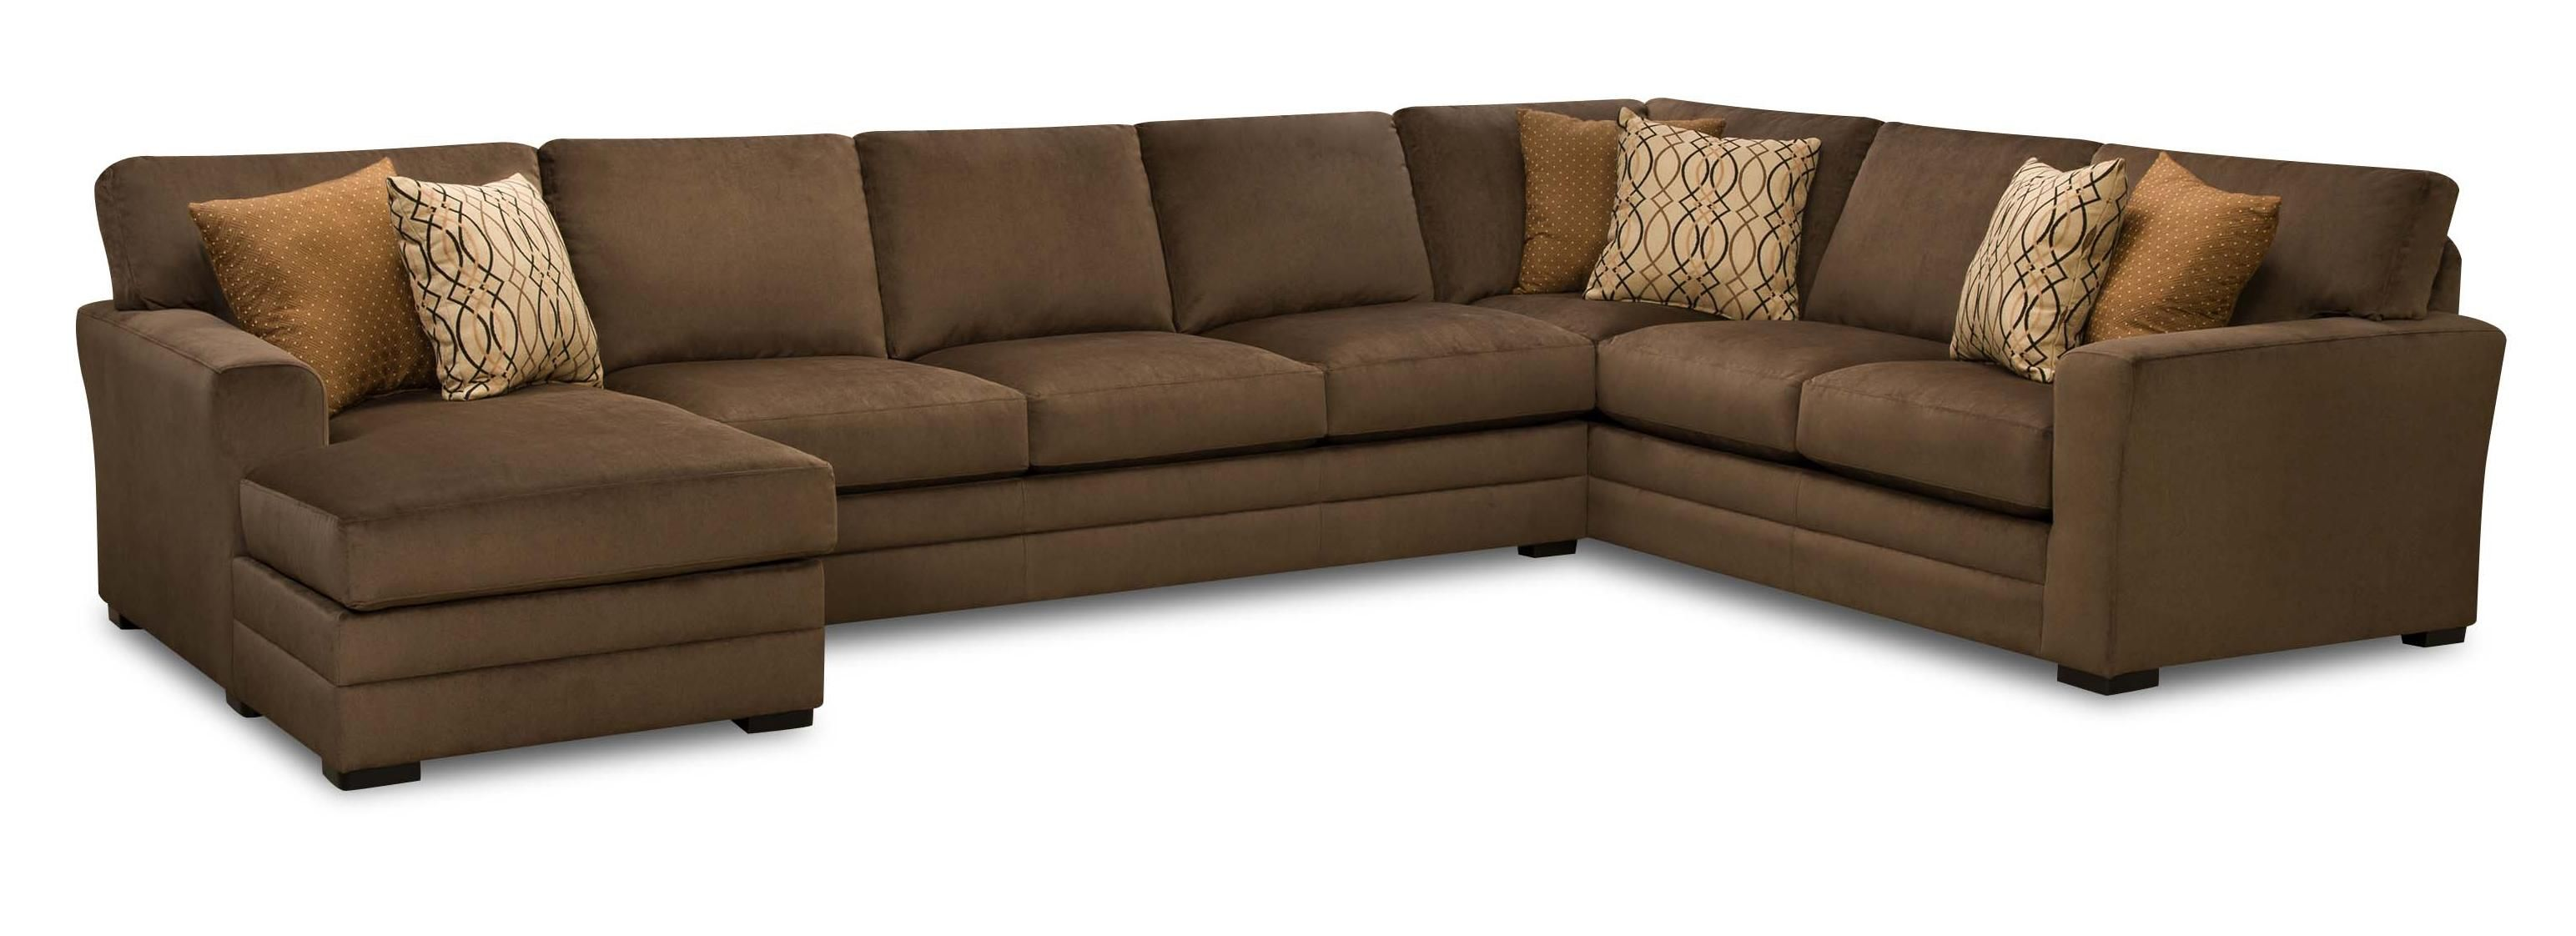 Transitional 3 Piece Sectional Sofa by United Furniture